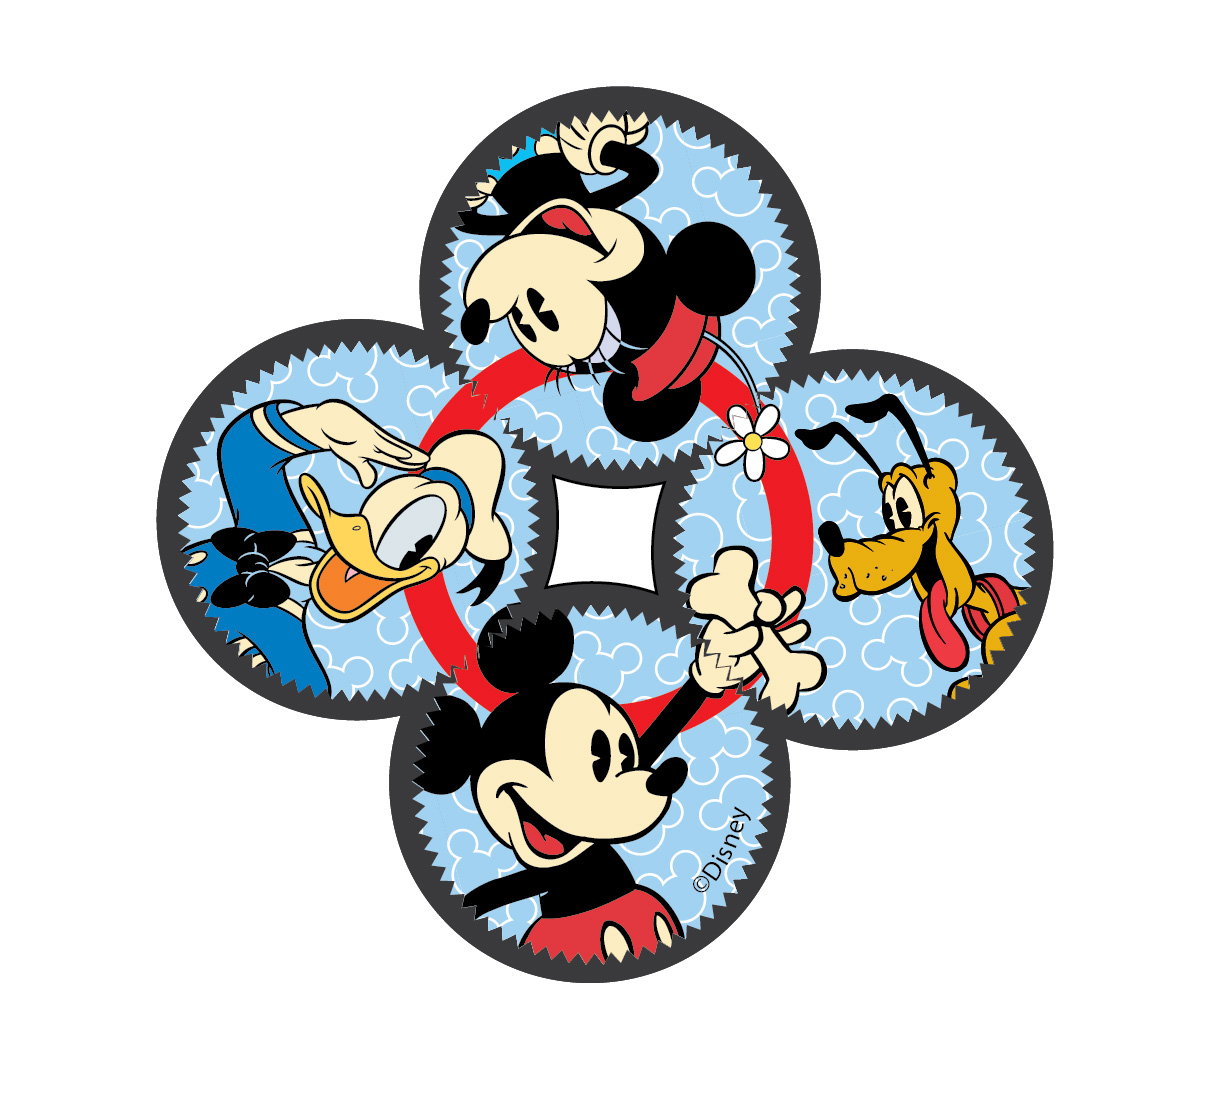 30723_GearShift_Disney_Classic_ProductArt-01